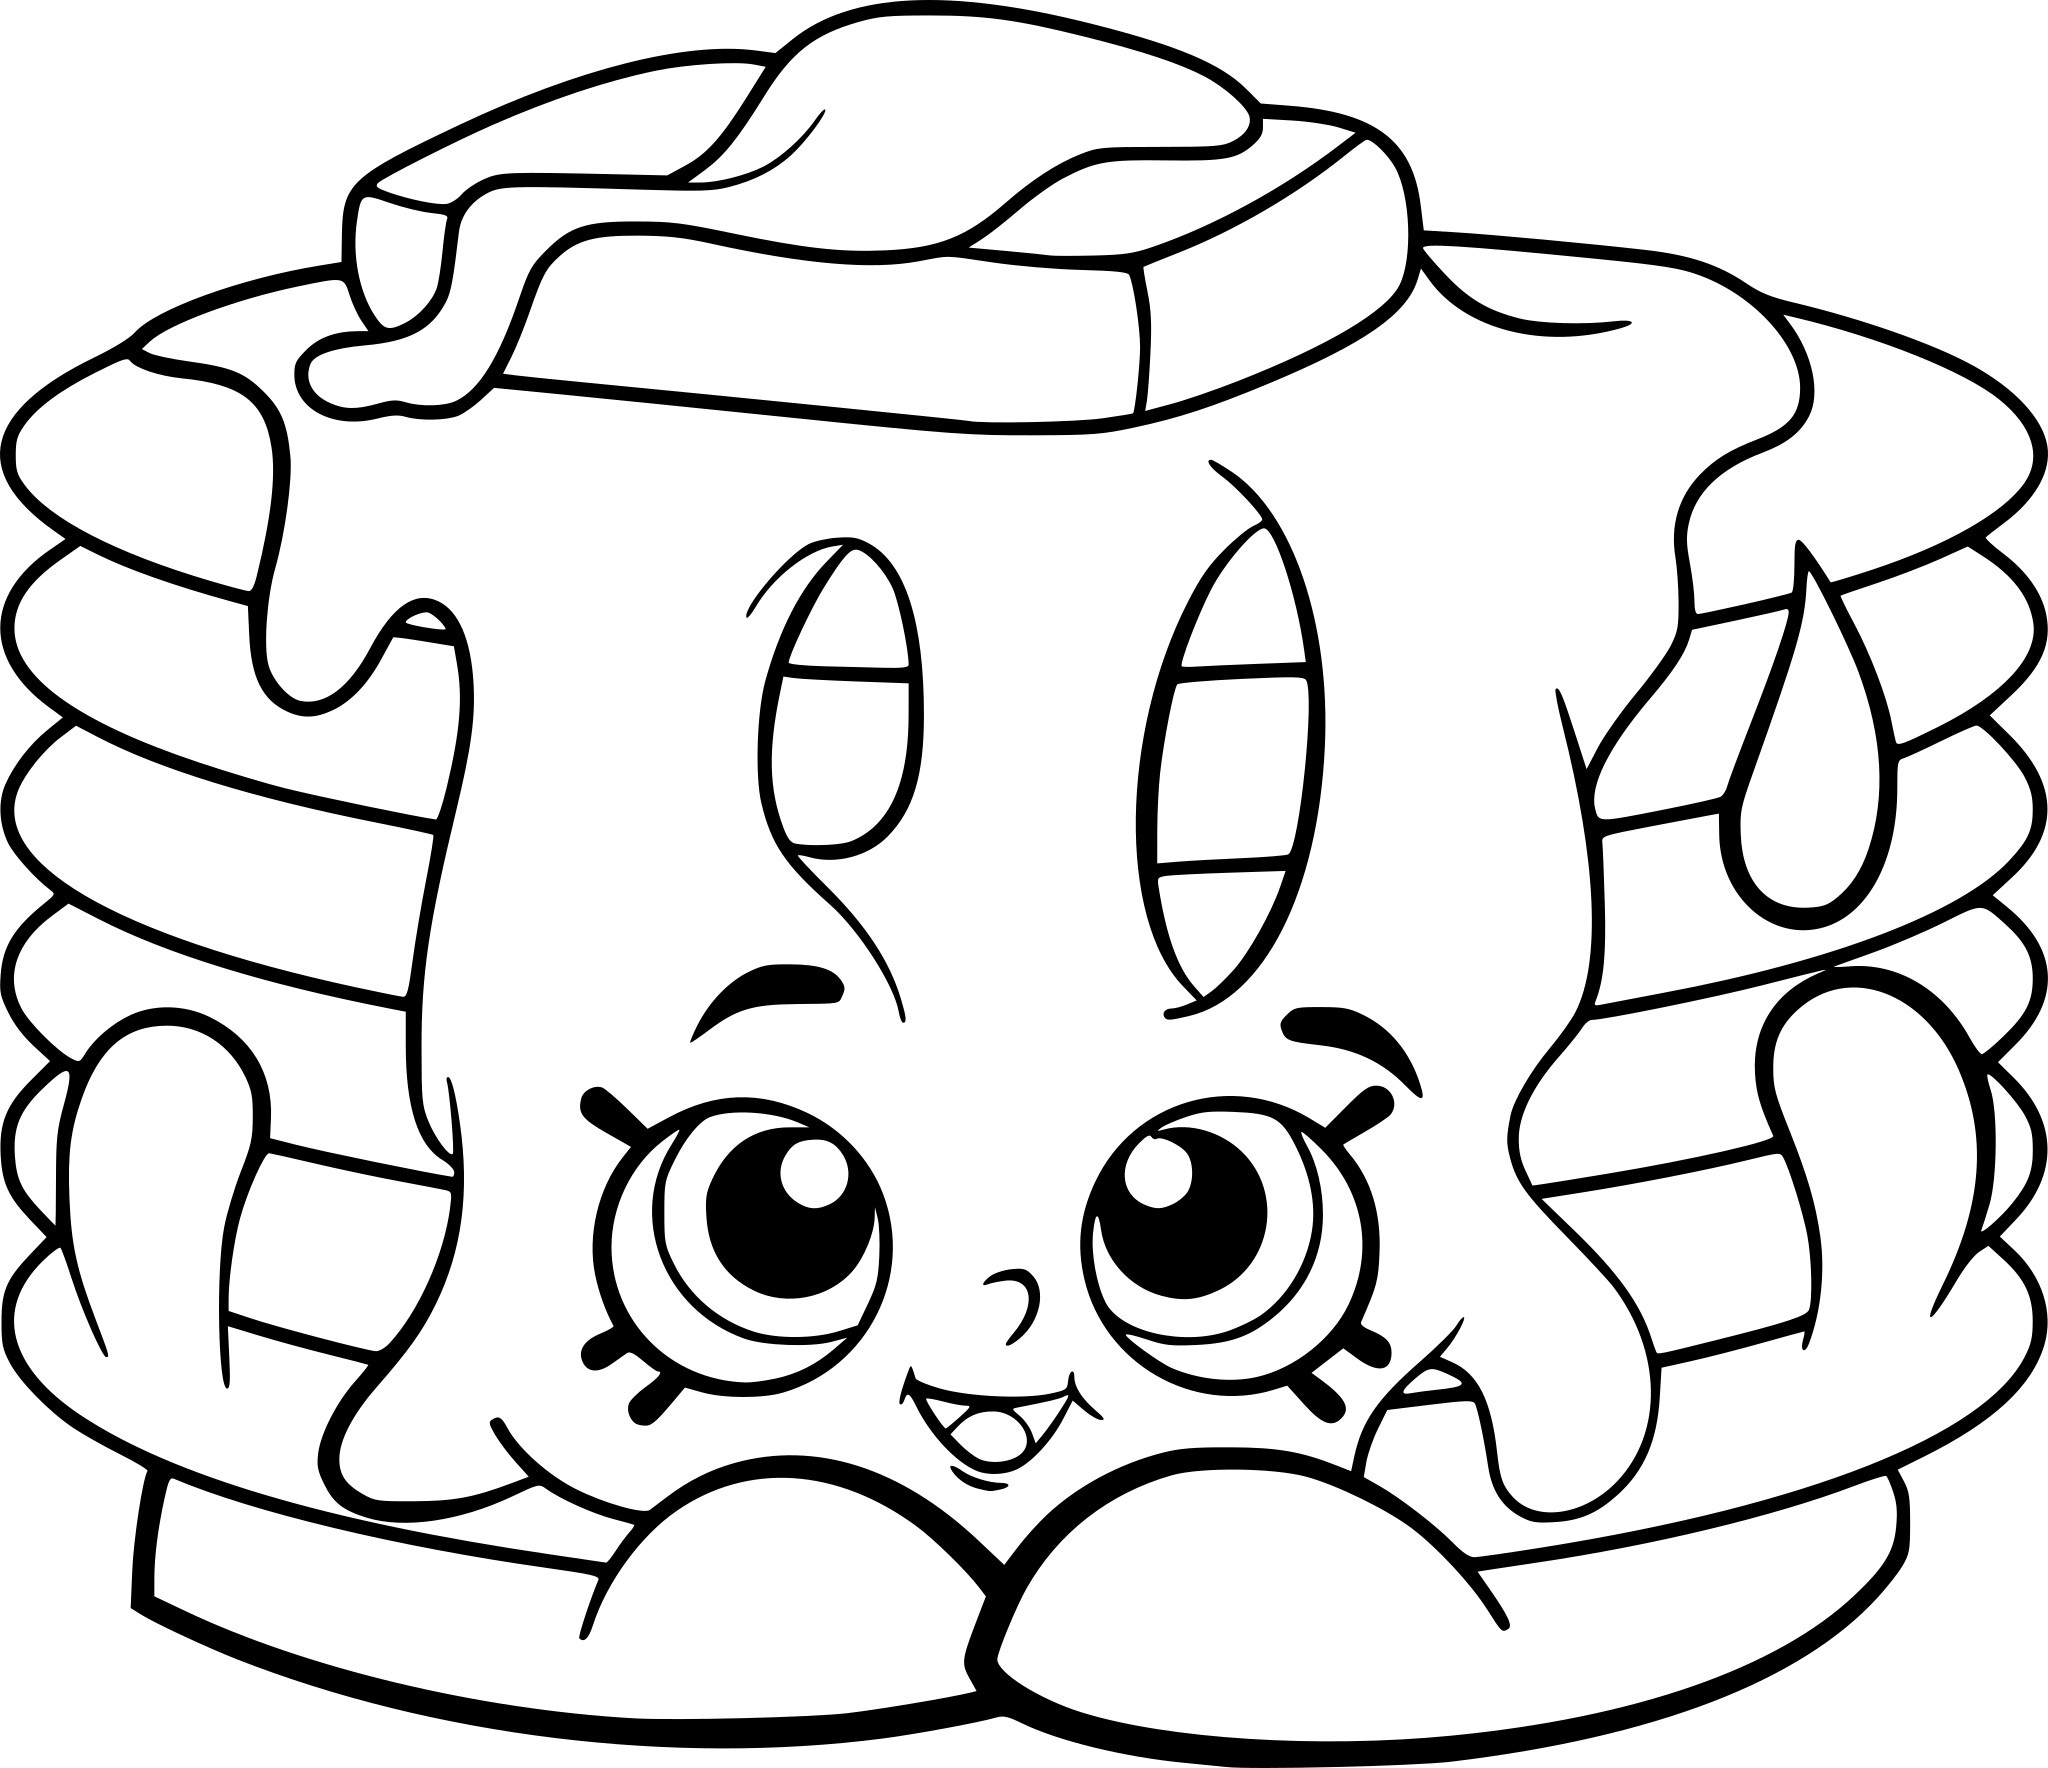 Free Printable Shopkins Coloring Pages - Coloring Pages For Kids - Free Shopkins Coloring Printables